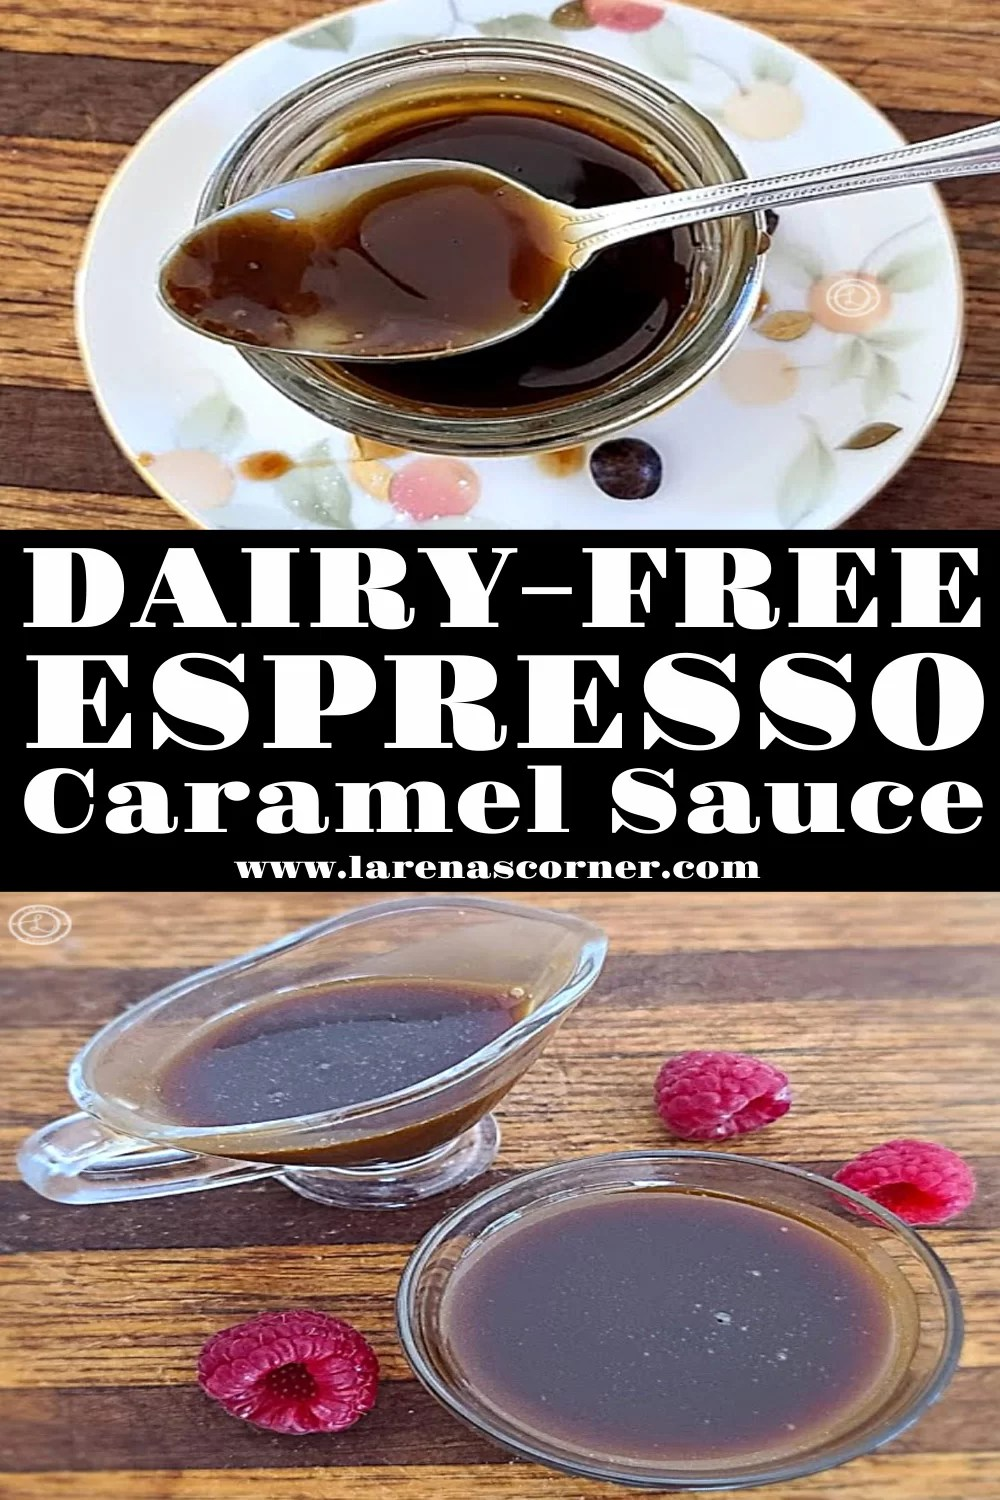 Two photos. Dairy-Free Espresso Caramel Sauce Recipe. One of a small bowl and picture with espresso sauce. One photo of a spoon full of sauce over a jar on a white plate.